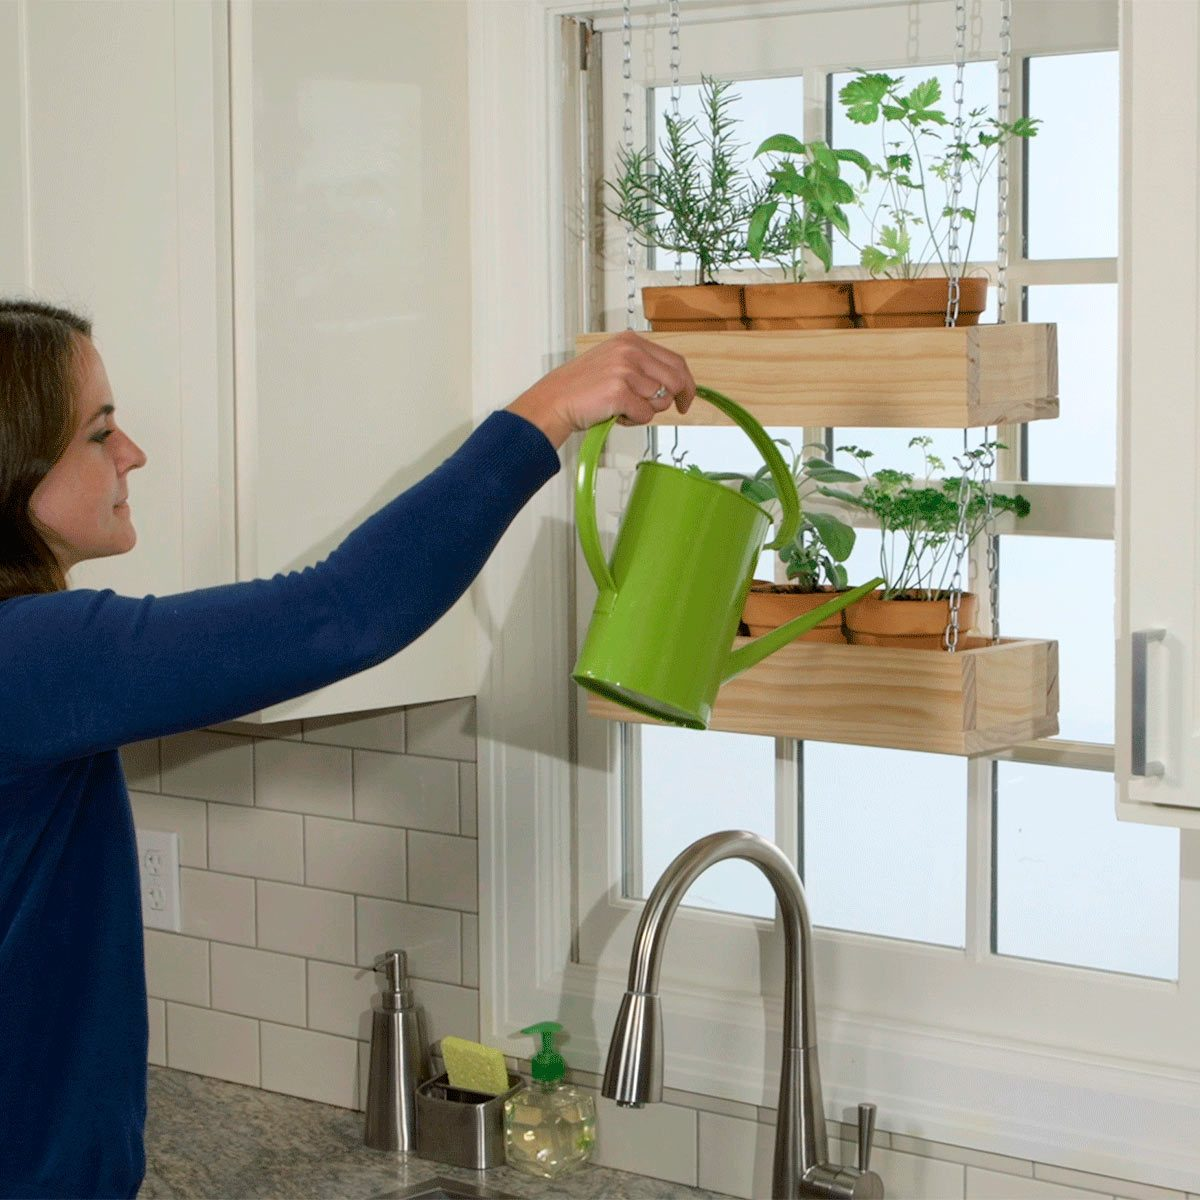 exhaust fan for kitchen ceiling install island how to build a hanging herb garden — the family handyman